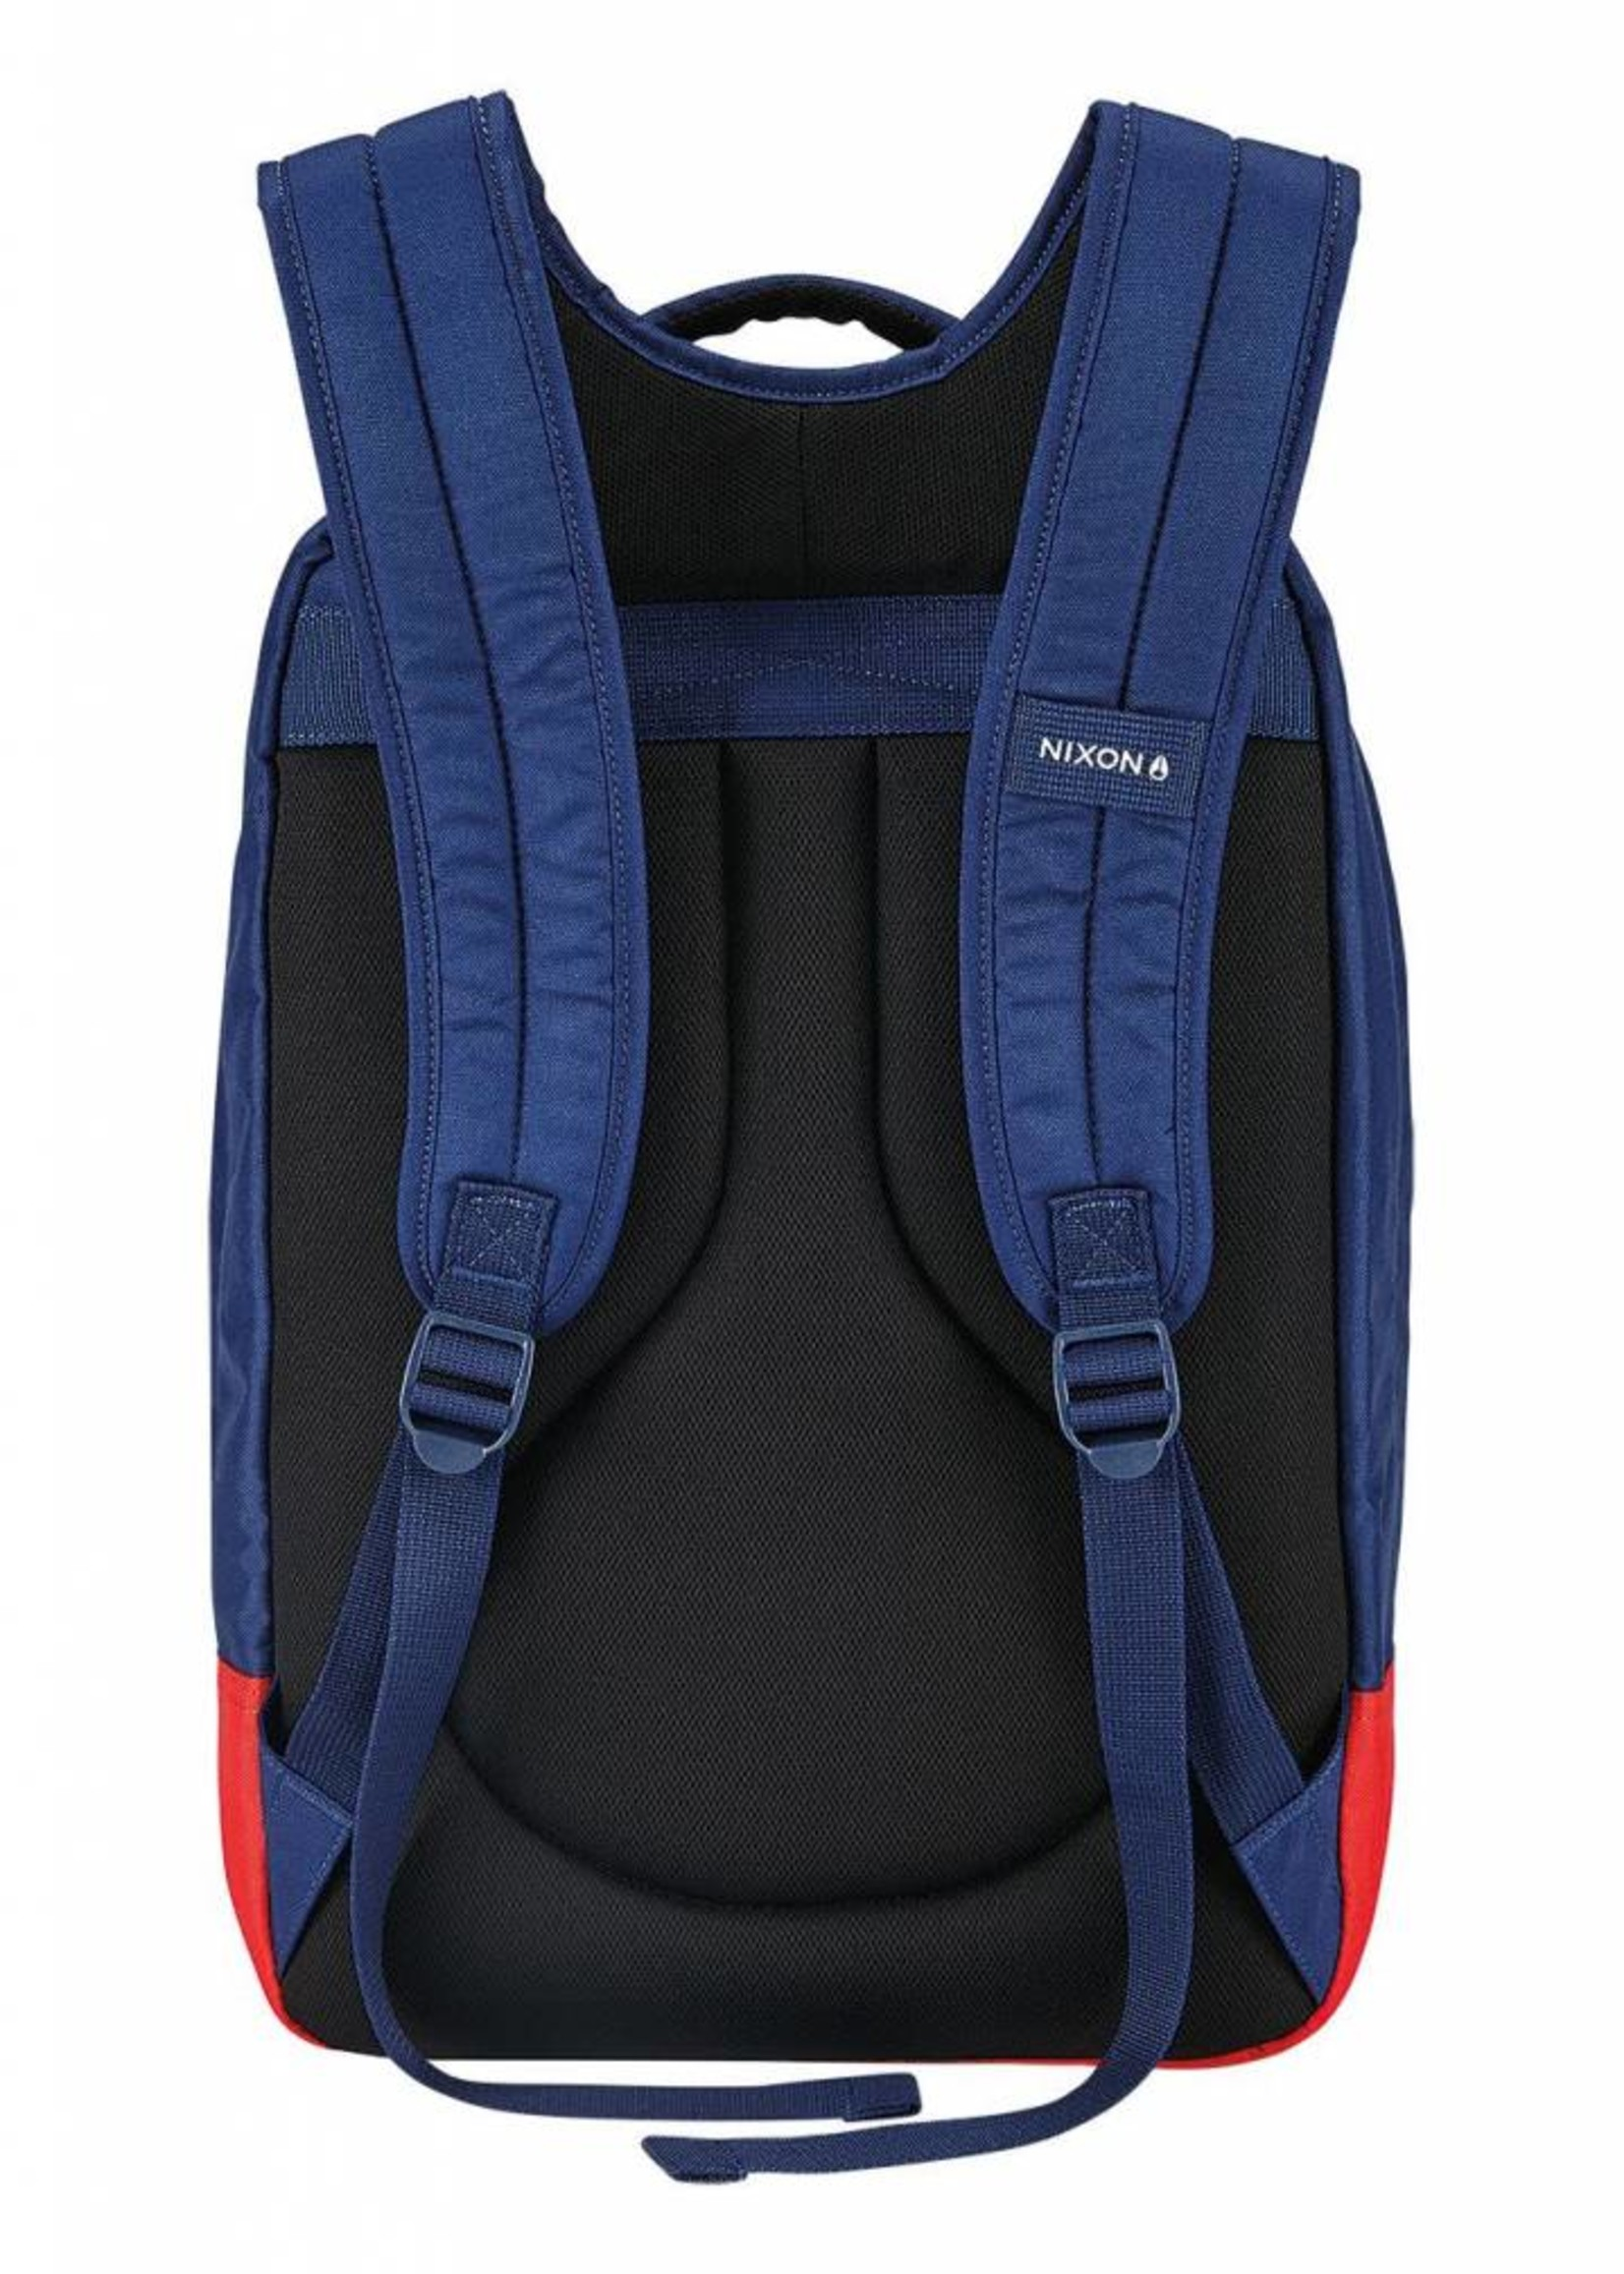 NIXON Beacons BackPack Red/White/Blue